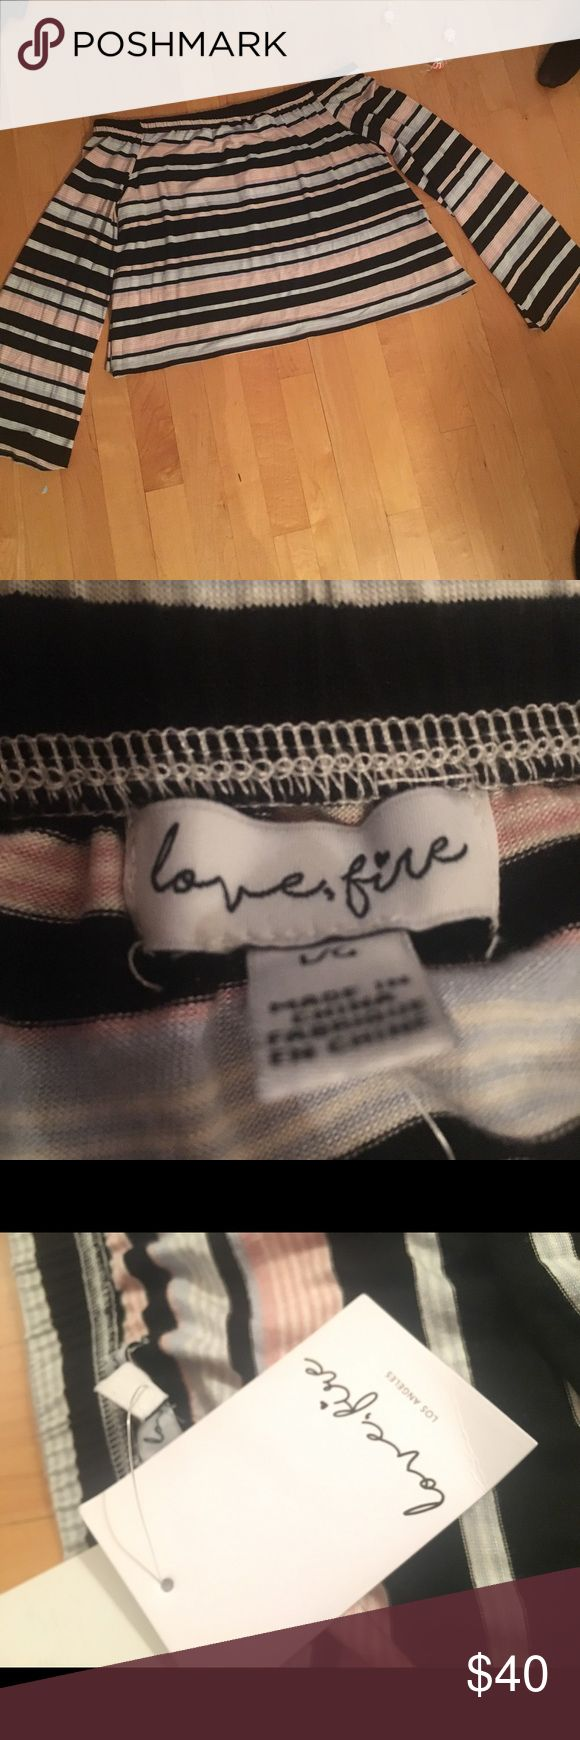 love, fire off the shoulder long sleeve top Love, fire off the shoulder long sleeve top. Multi-colored striped top. Material feels very comfy! Love, Fire Tops